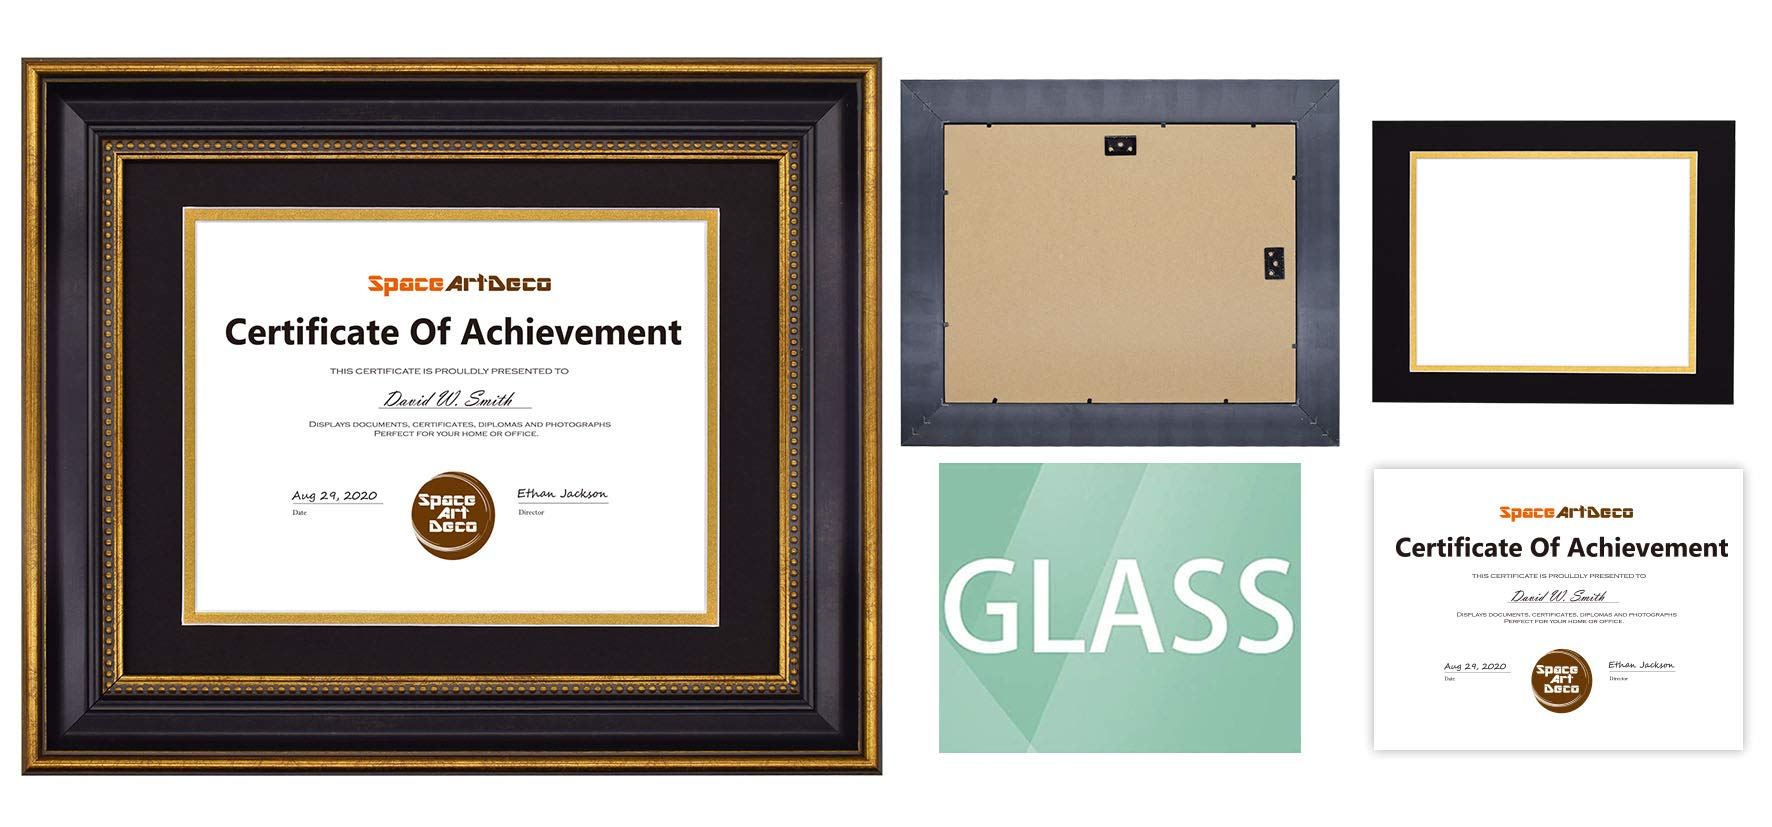 Space Art Deco, Set of 2-11x14 Ornate Gold Diploma Frame - Black/Gold Double Mat for 8.5x11 Document - Wall Mounting - Sawtooth Hangers - for Graduation, Commencement, Acknowledgements, Degrees by Space Art Deco (Image #7)